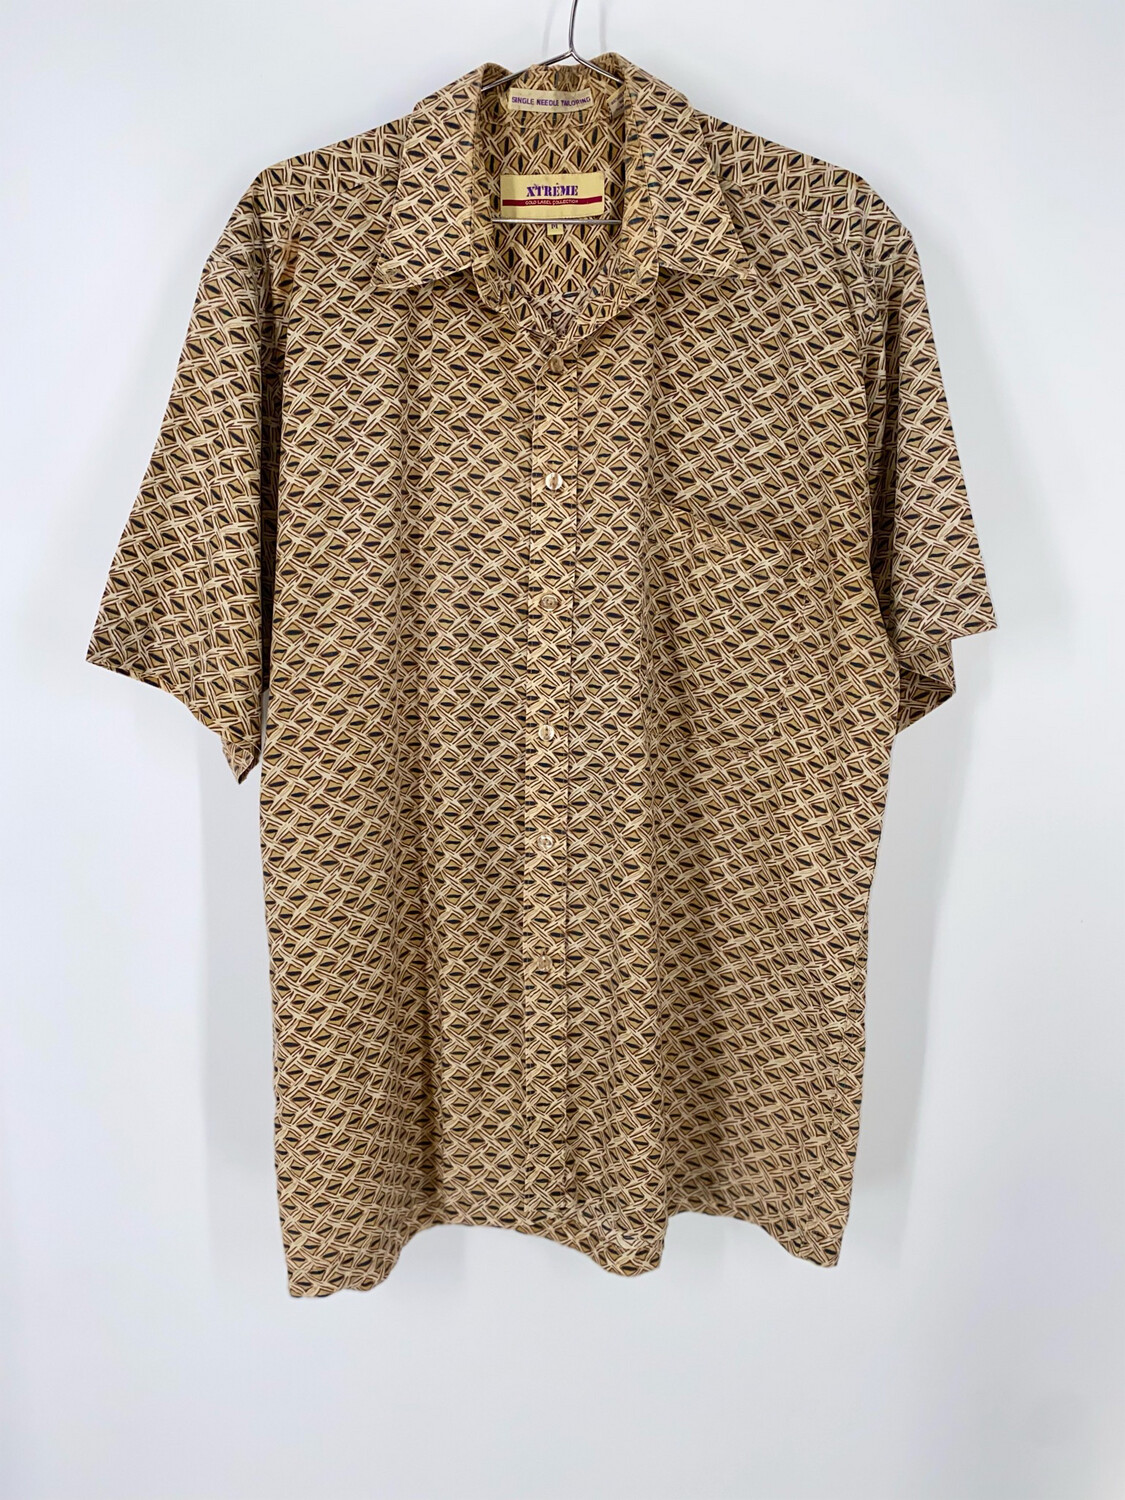 Xtreme Patterned Button Up Size M